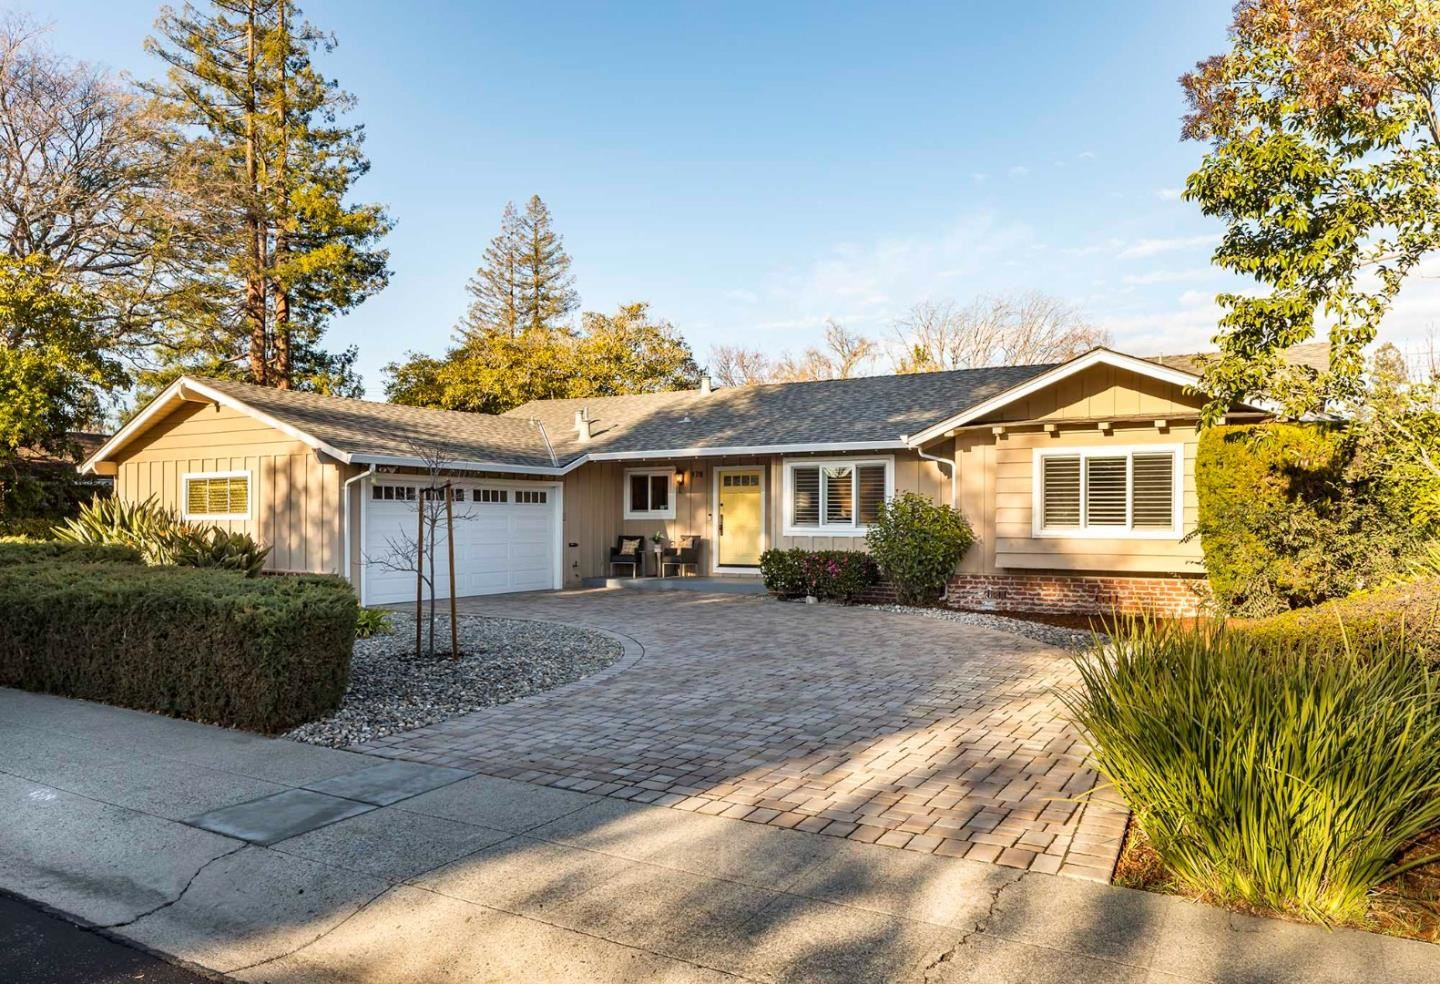 Photo for 178 Ely PL, PALO ALTO, CA 94306 (MLS # ML81829183)